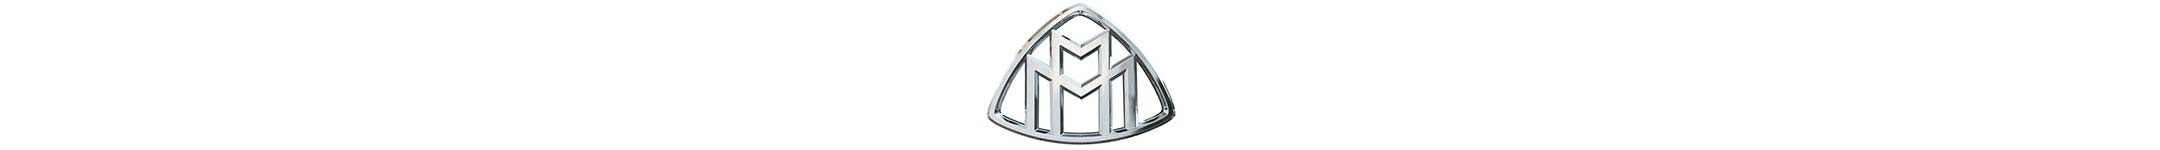 Mercede Maybach Logo